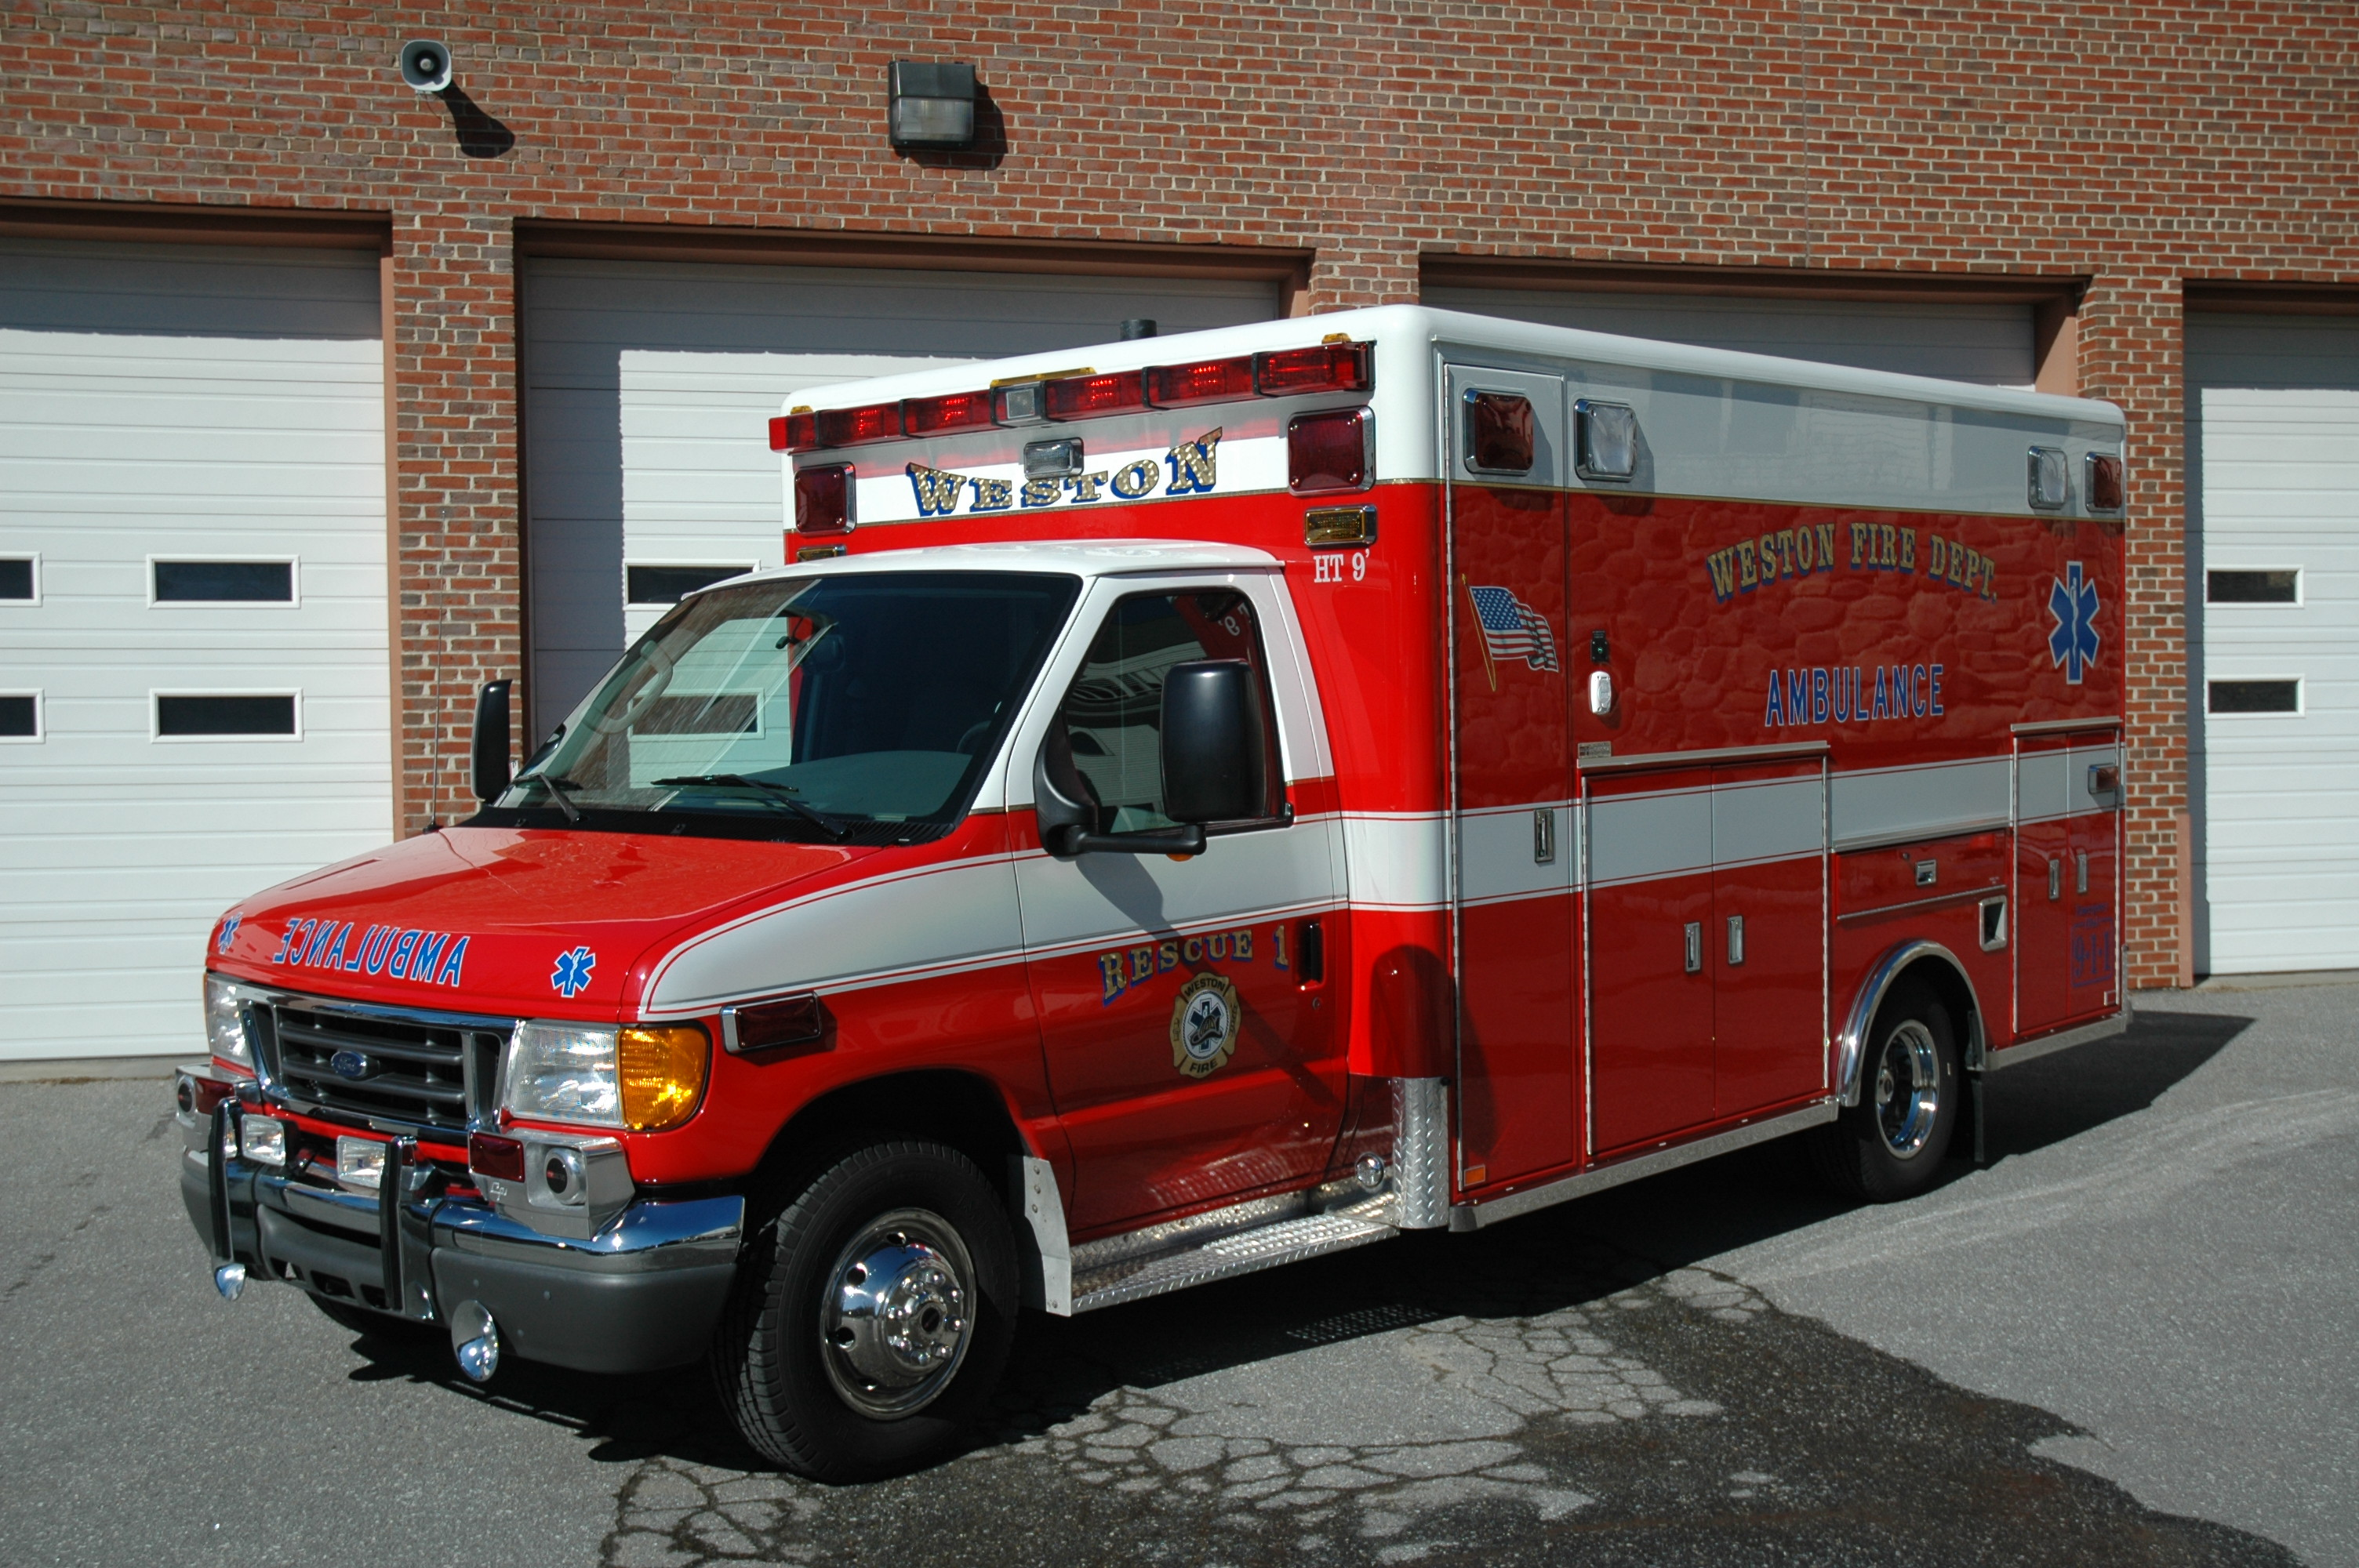 Rescue 1 Ambulance